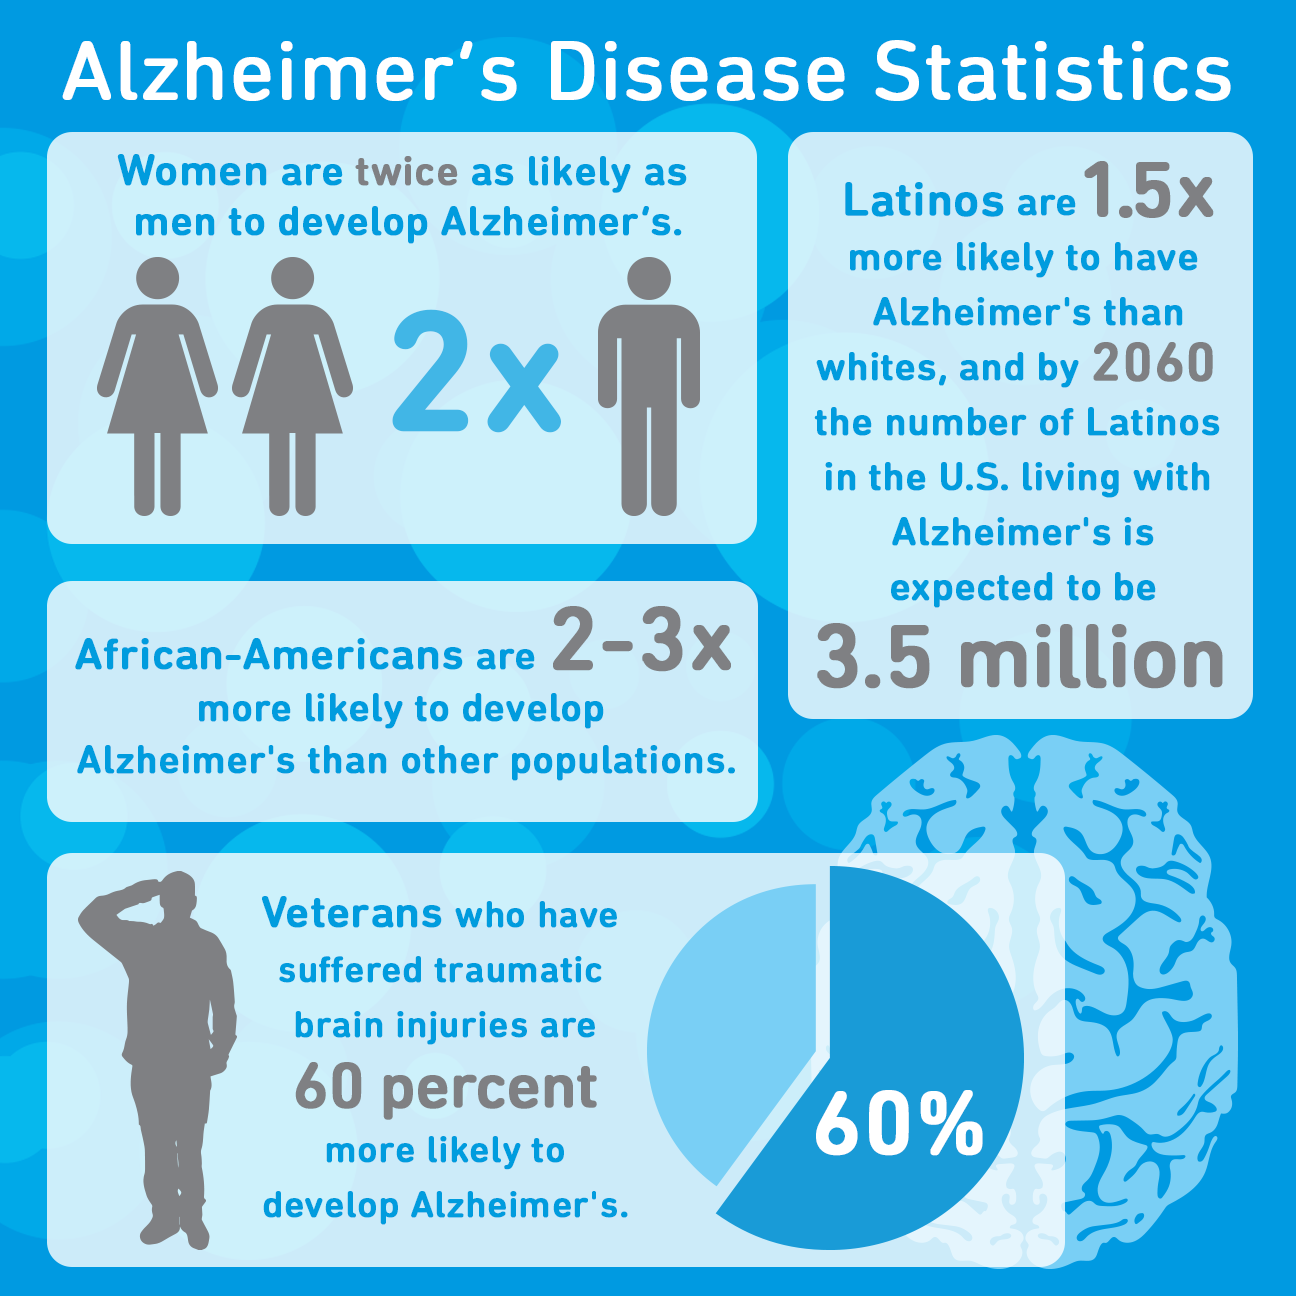 Infographic for Alzheimer's